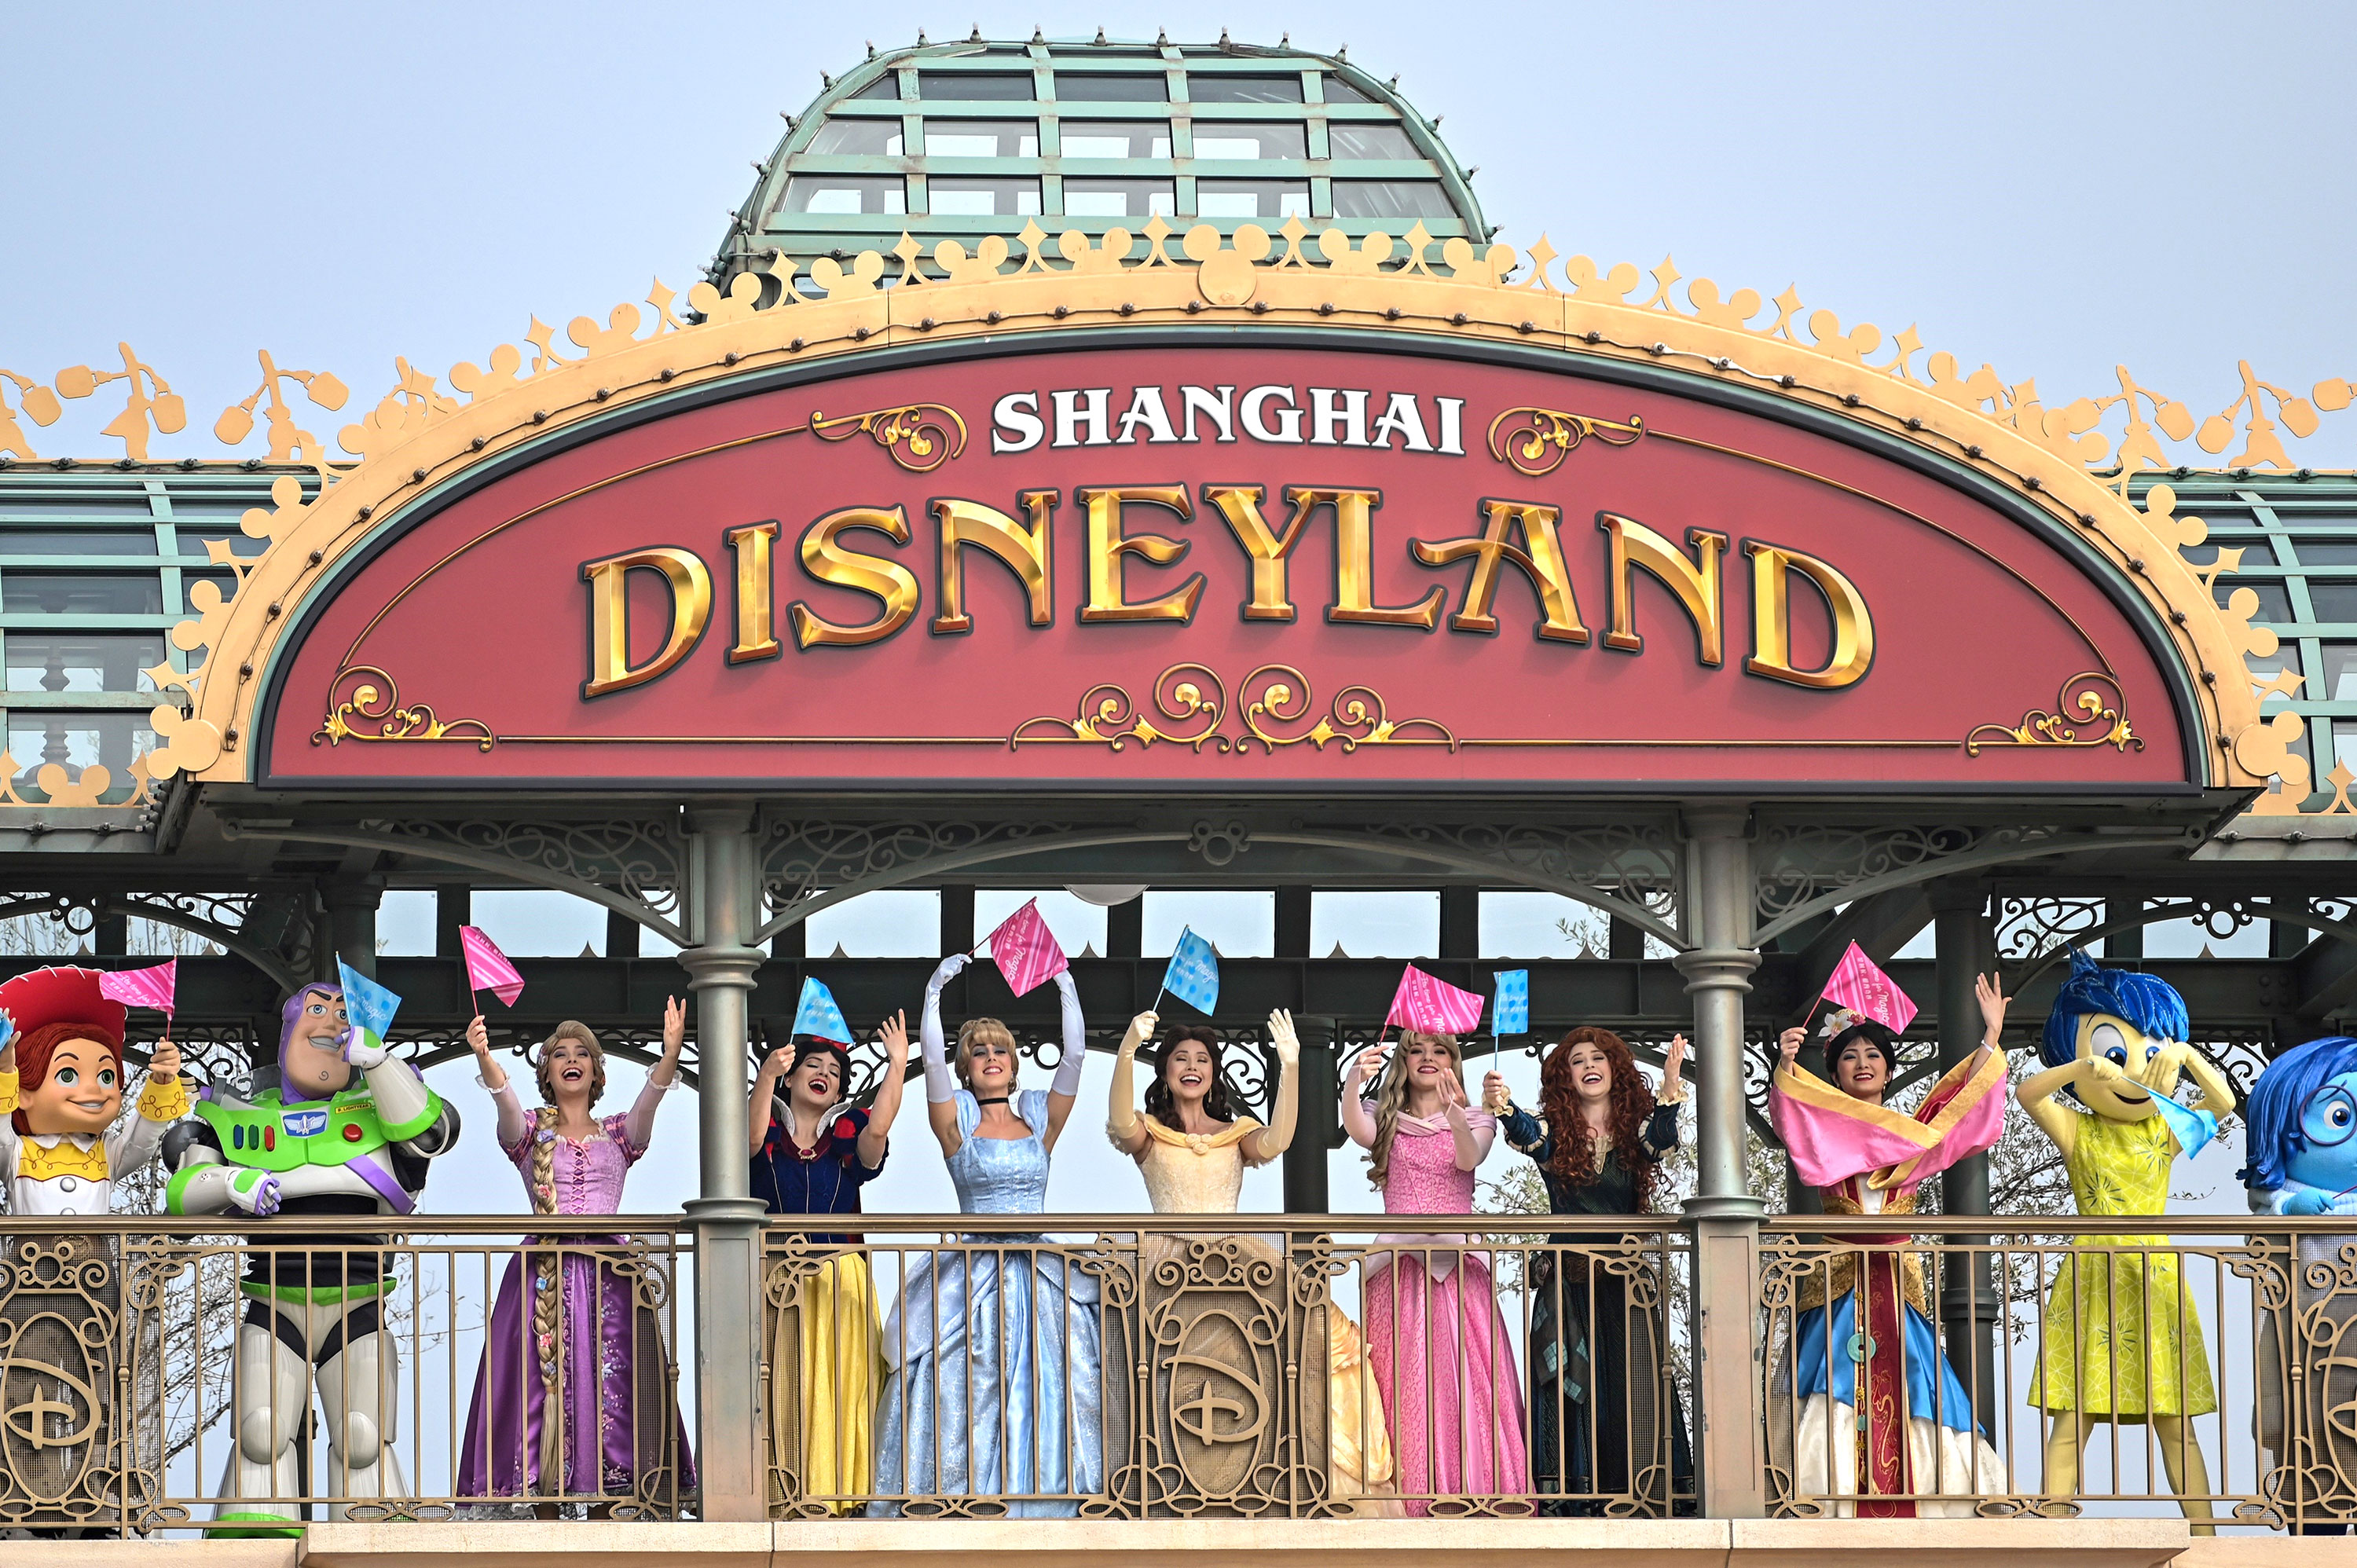 Performers dressed as Disney characters welcome visitors during the reopening of Disneyland Shanghai on May 11 in Shanghai, China.